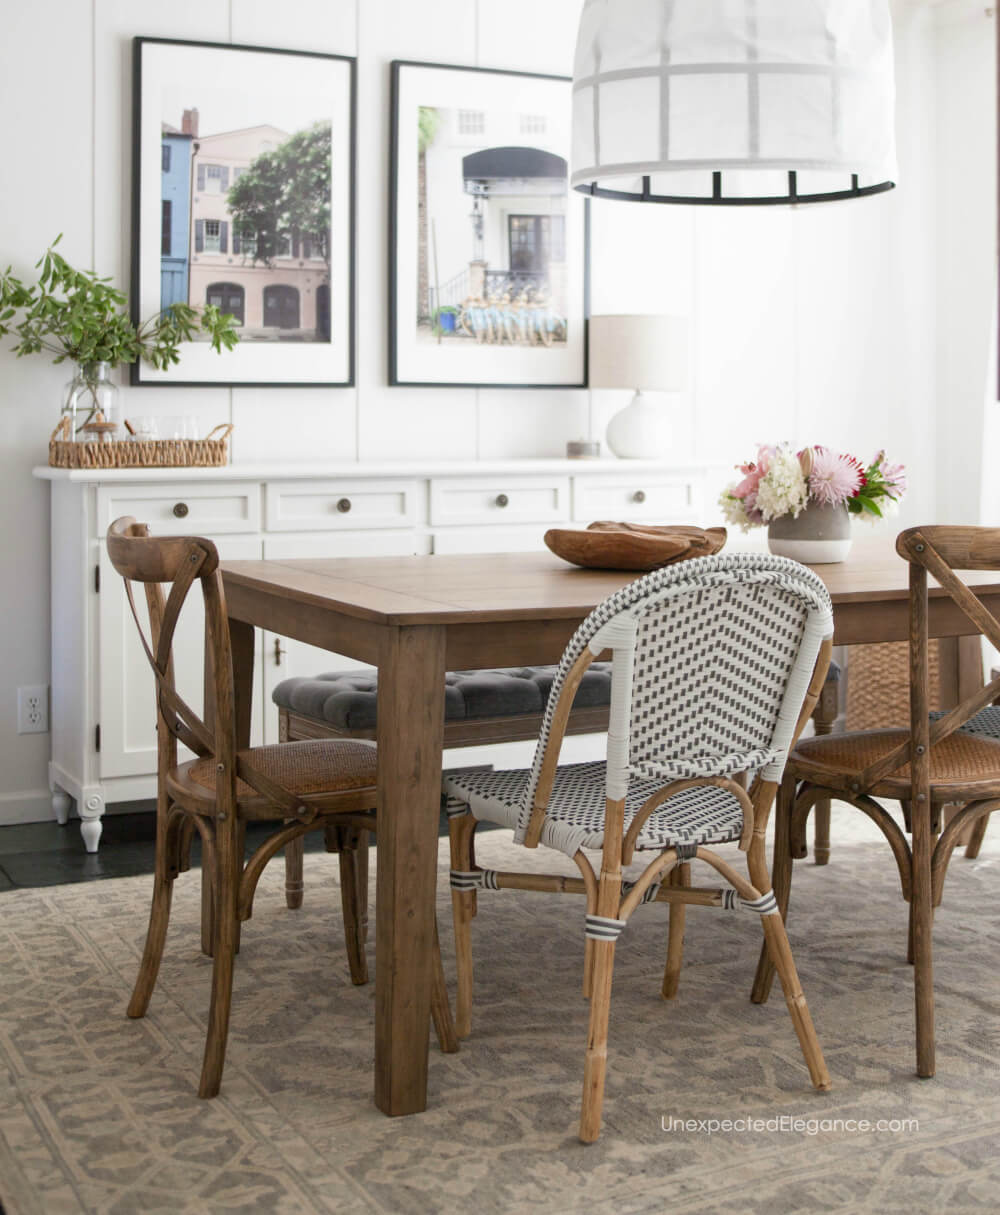 Casual and elegant farmhouse style dining room makeover. Get all the details!